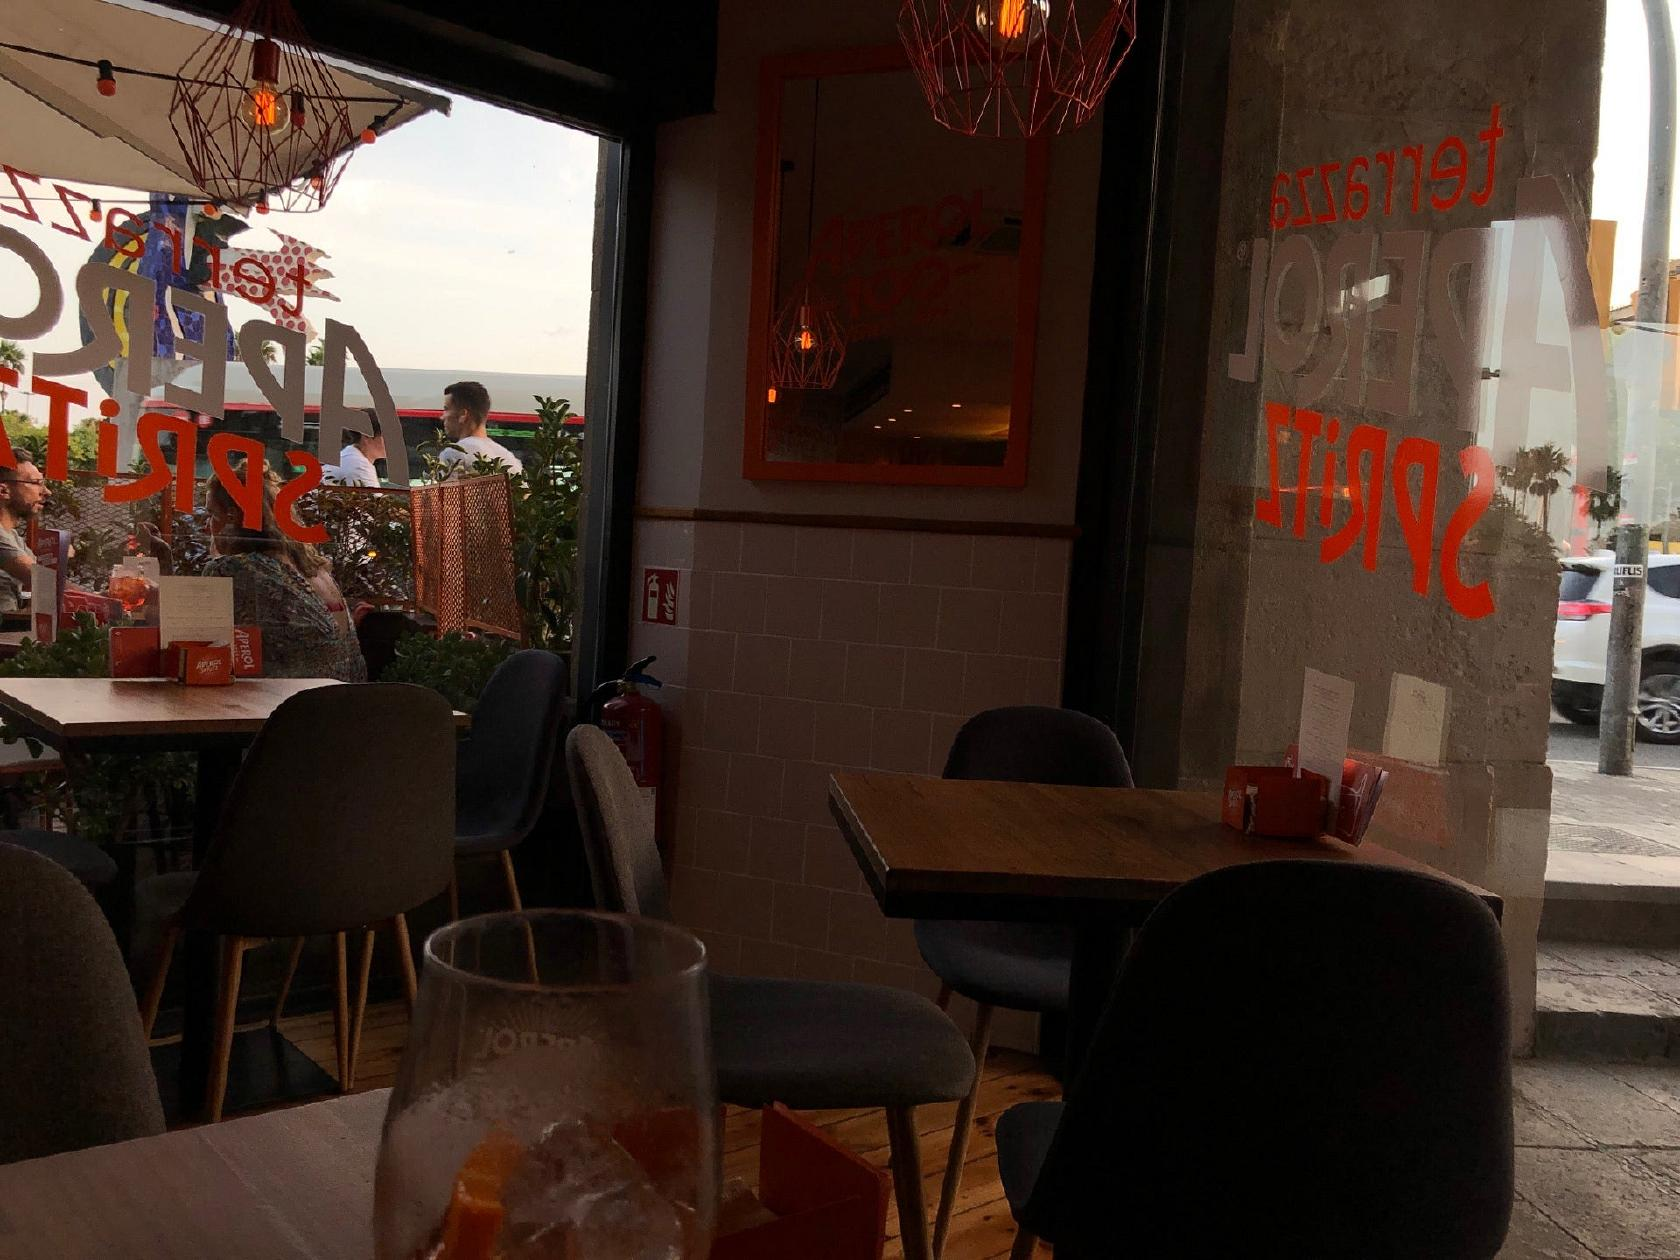 Terrazza Aperol Spritz In Barcelona Restaurant Menu And